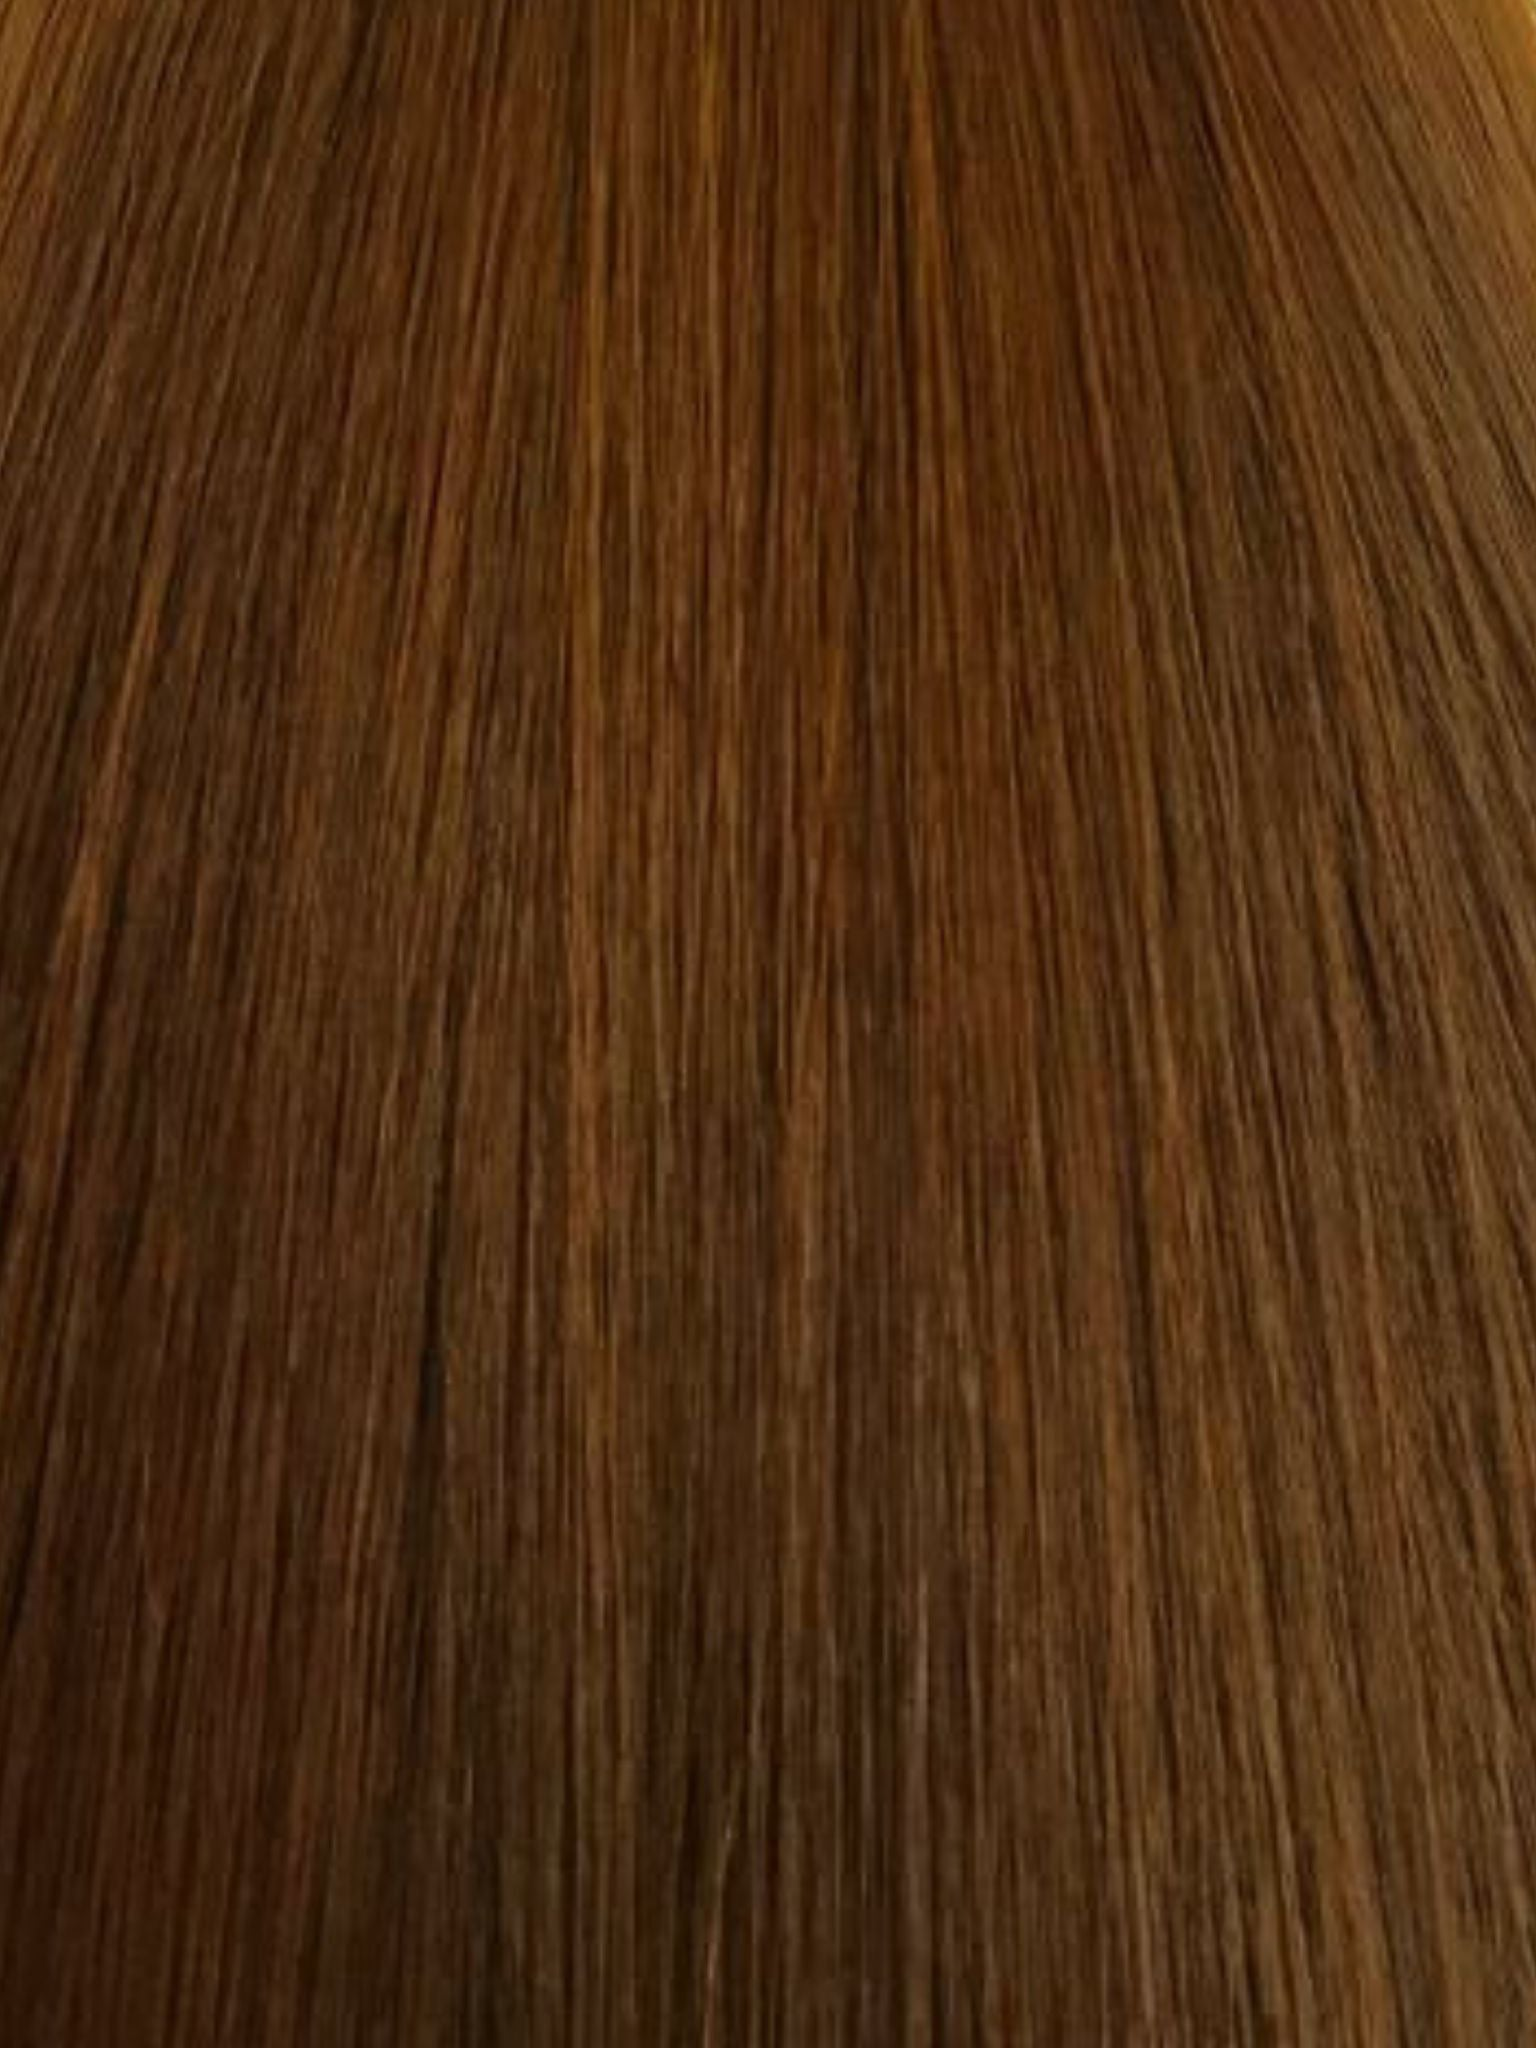 Stick Tip Hair Extensions - Dark Copper #130